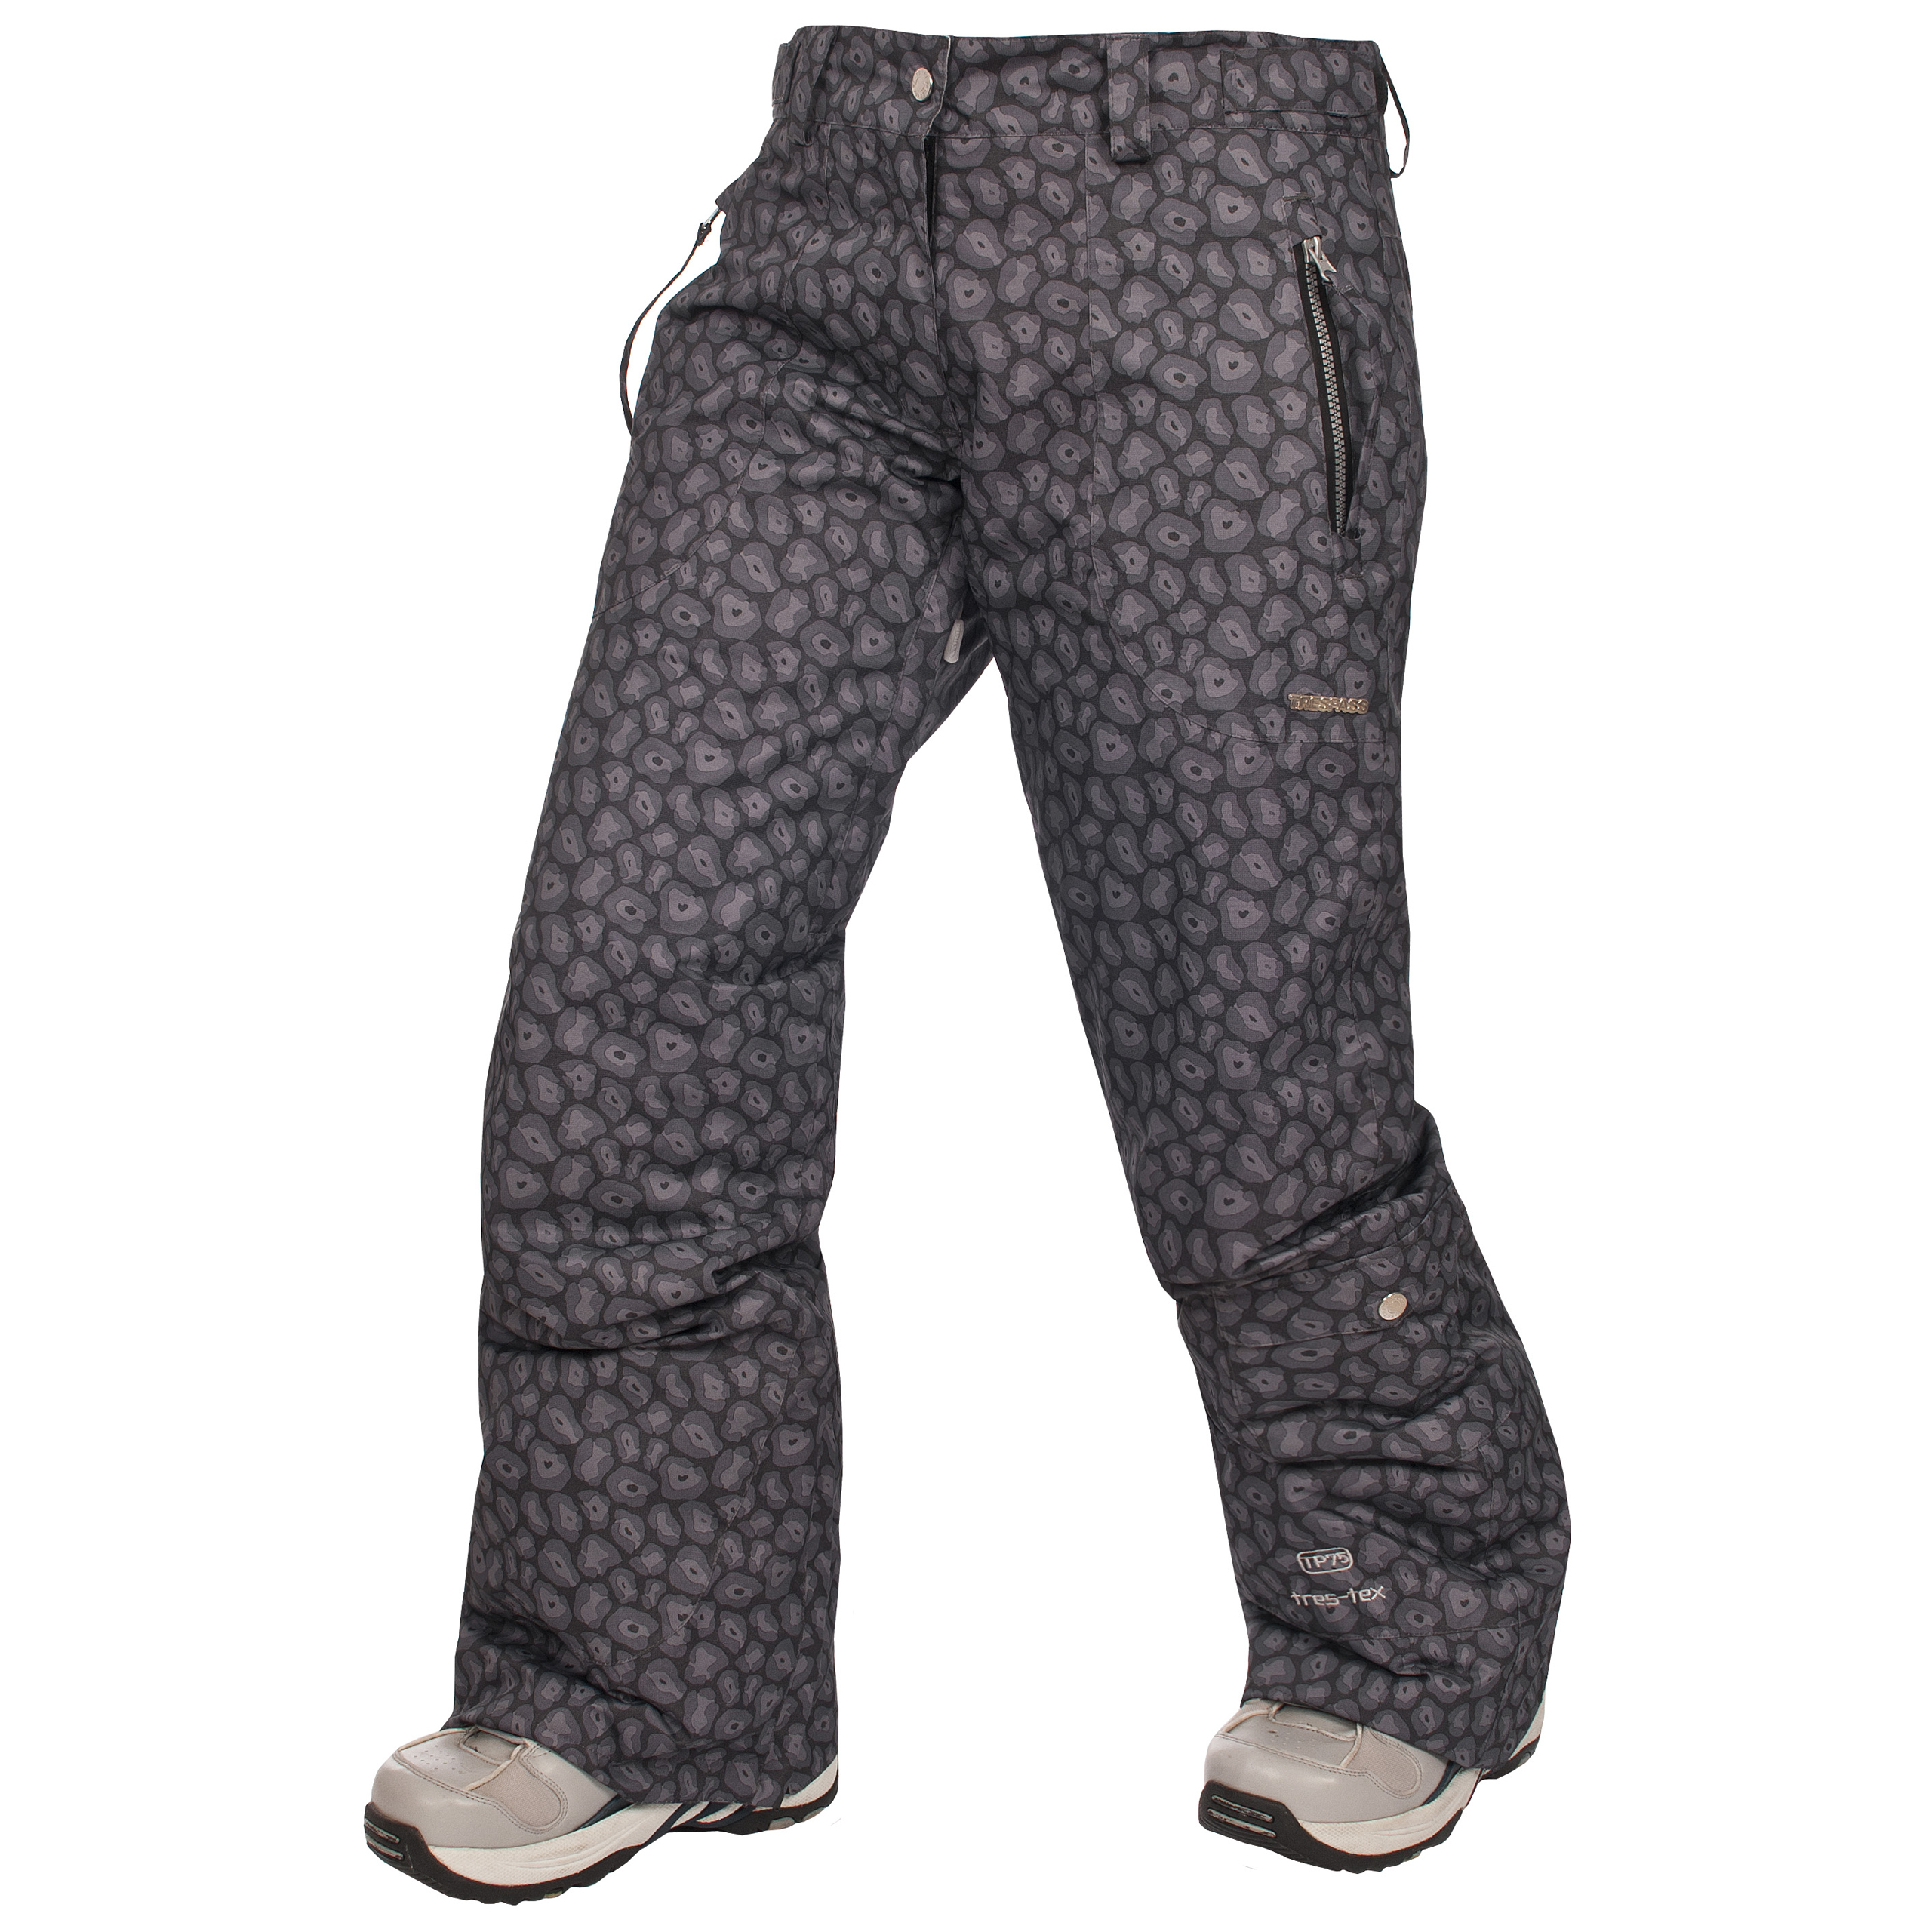 Browse a selection of name brands such as Burton, DC, Roxy, Volcom, and more to find a pair of snow pants that fit comfortably and goes with your snowboard jacket and other snow clothes. These women's snowboard pants are perfect for snowing, skiing, or even shoveling your driveway.